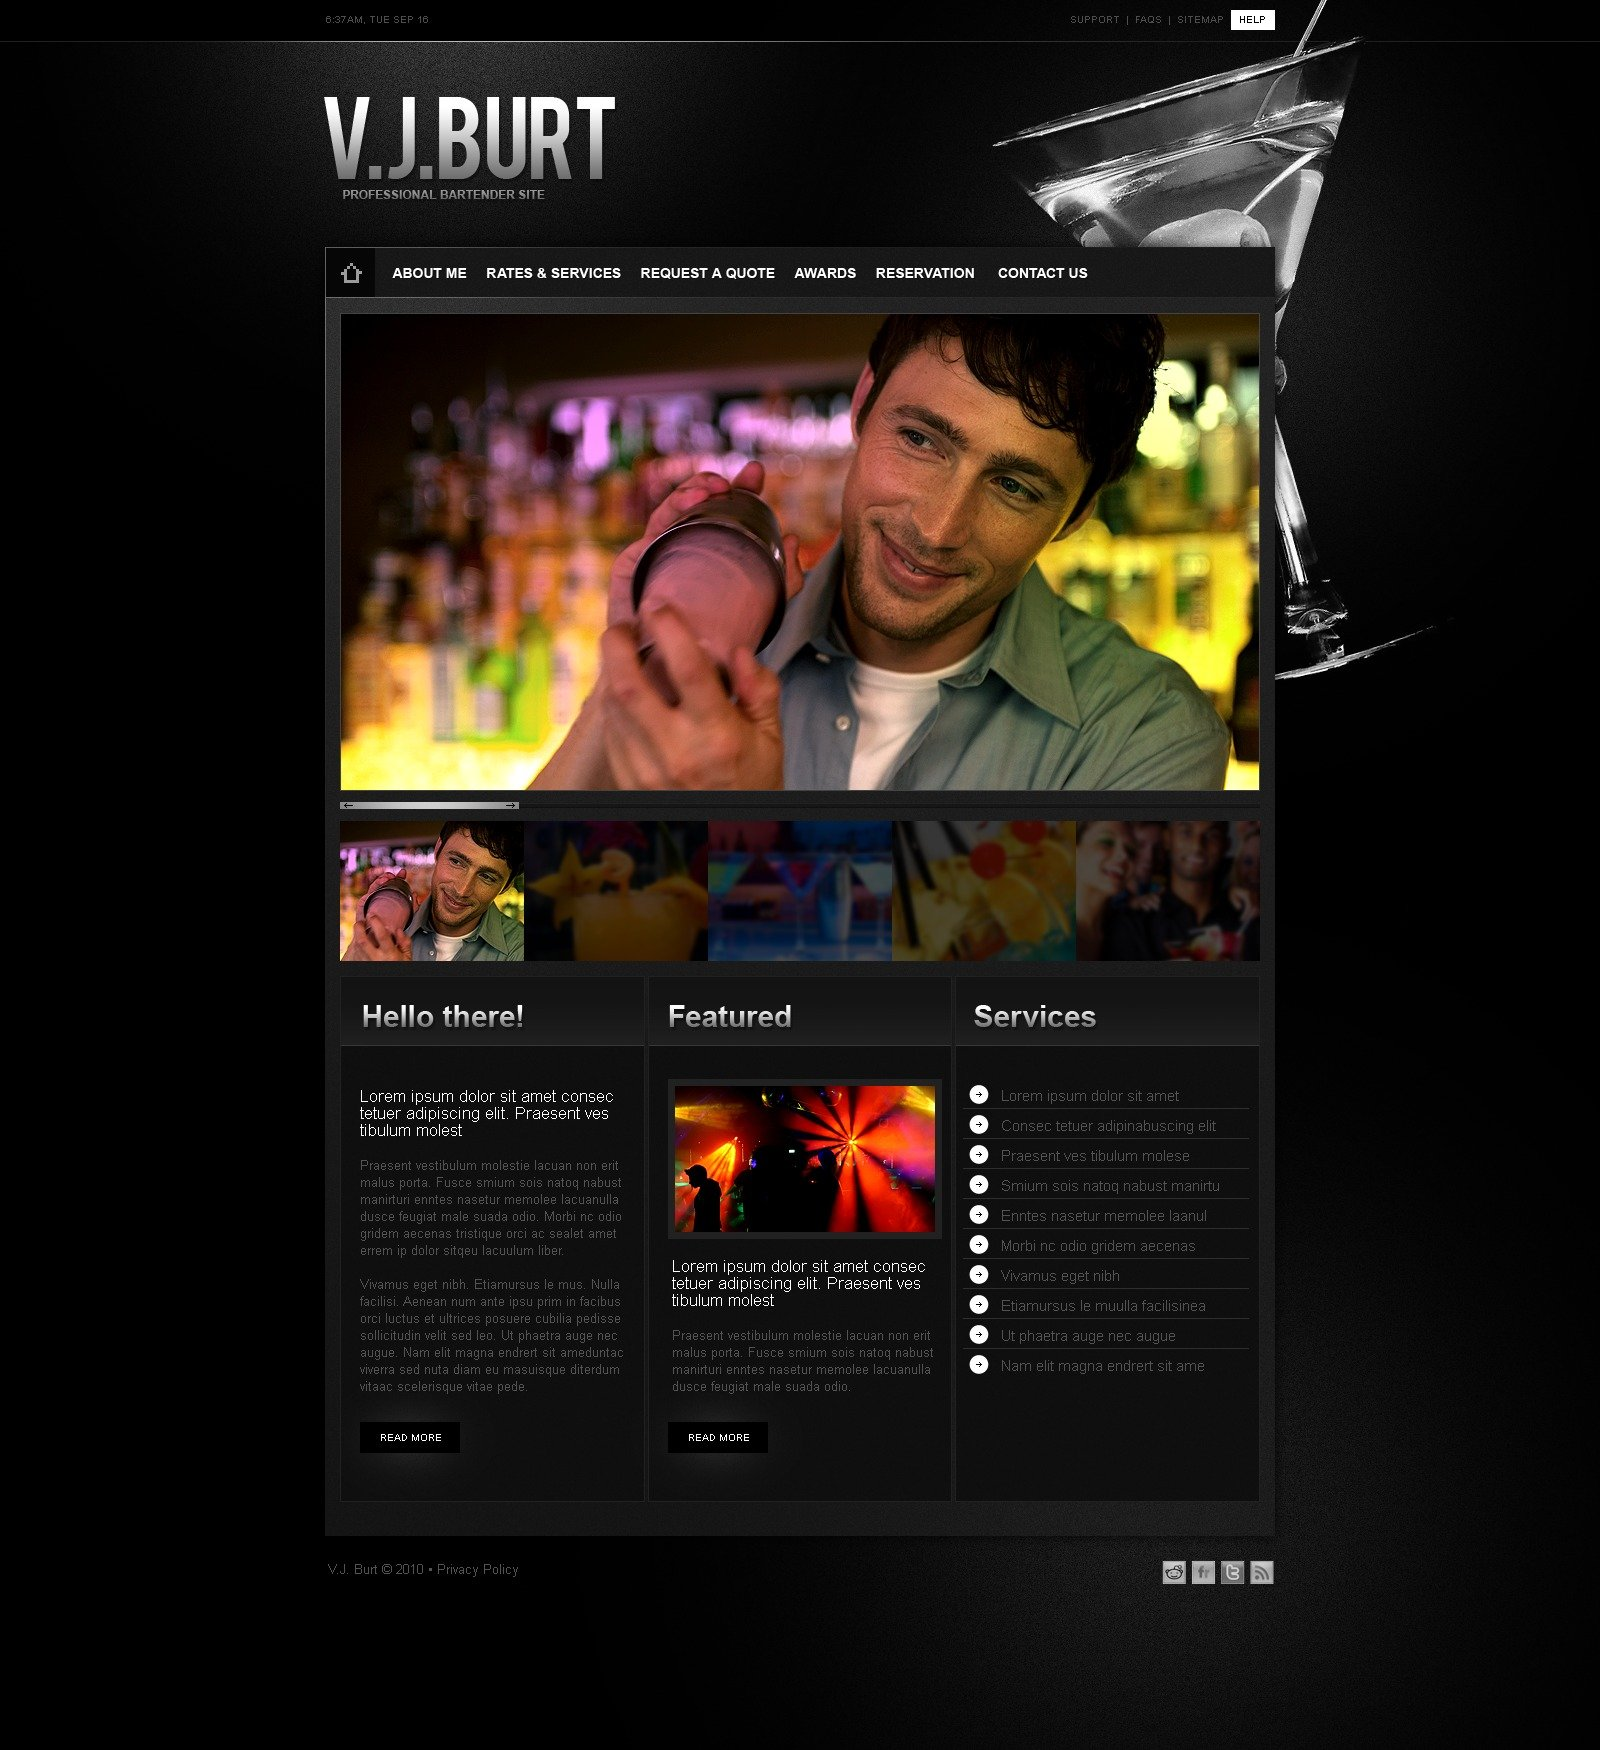 The V.J. Burt Professional PSD Design 54355, one of the best PSD templates of its kind (food & drink, personal pages, cafe and restaurant, most popular, flash 8, wide, black), also known as V.J. Burt professional PSD template, bartender PSD template, site PSD template, cocktail PSD template, party PSD template, personal page PSD template, awards club PSD template, night and related with V.J. Burt professional, bartender, site, cocktail, party, personal page, awards club, night, etc.